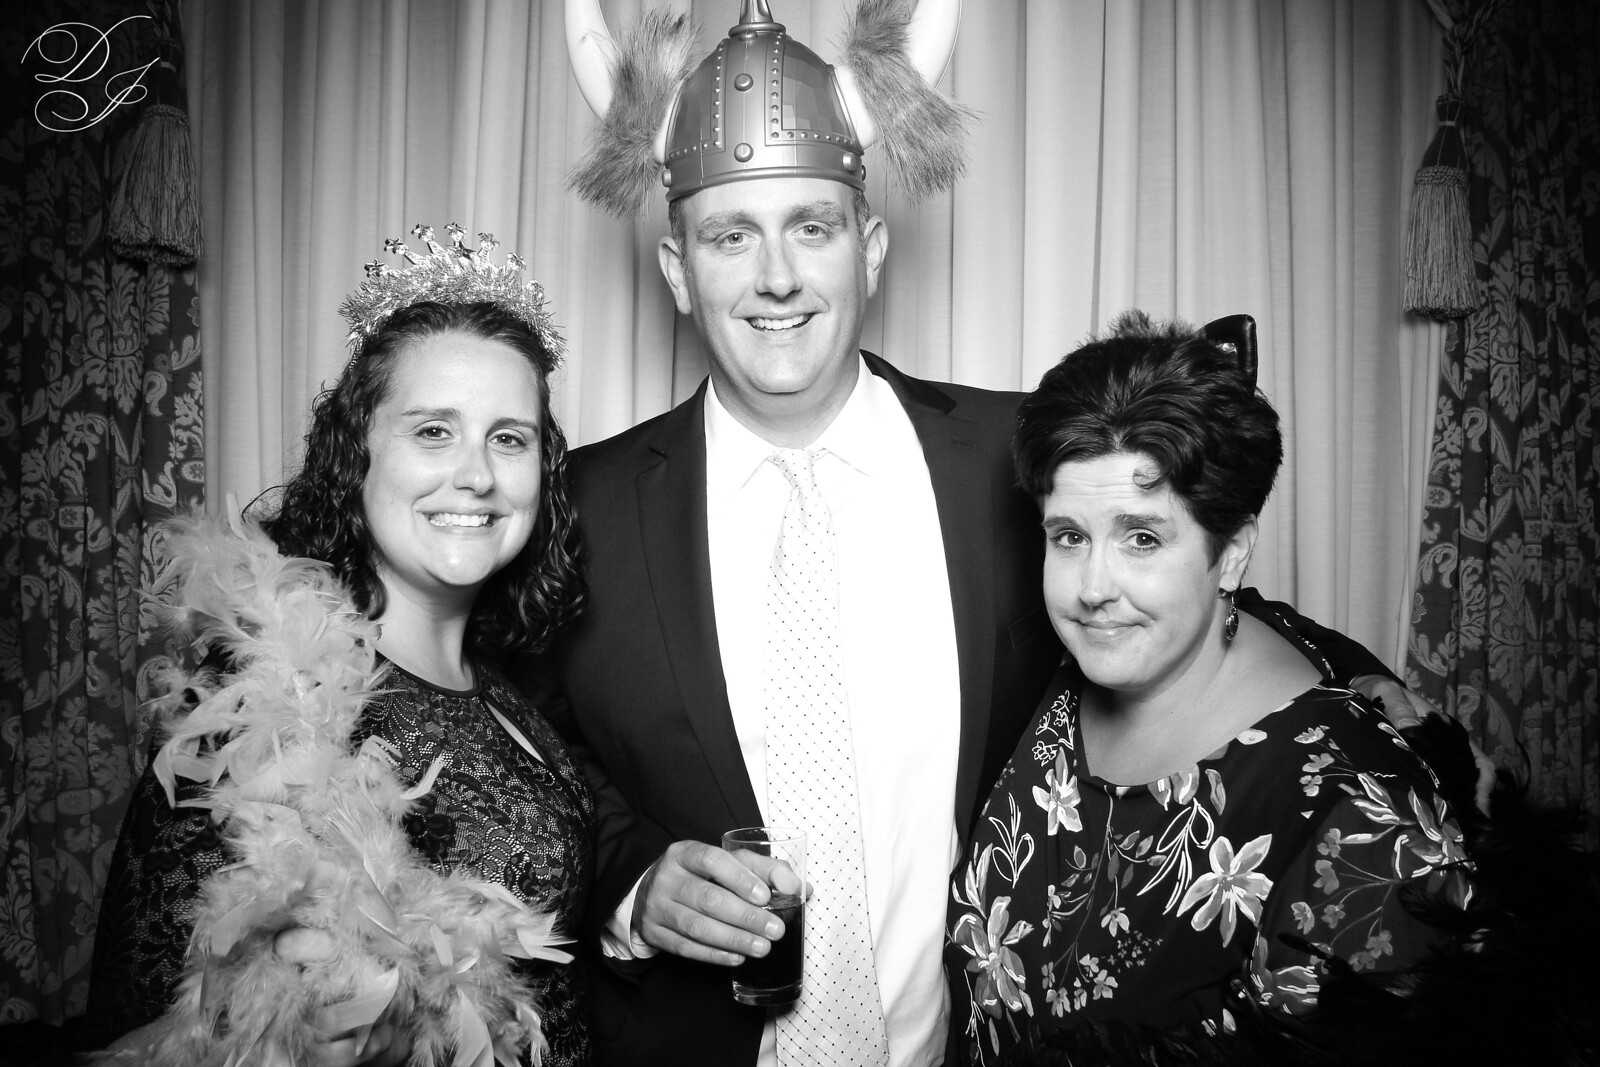 Chicago_Vintage_Wedding_Photobooth_Union_League_Club_13.jpg